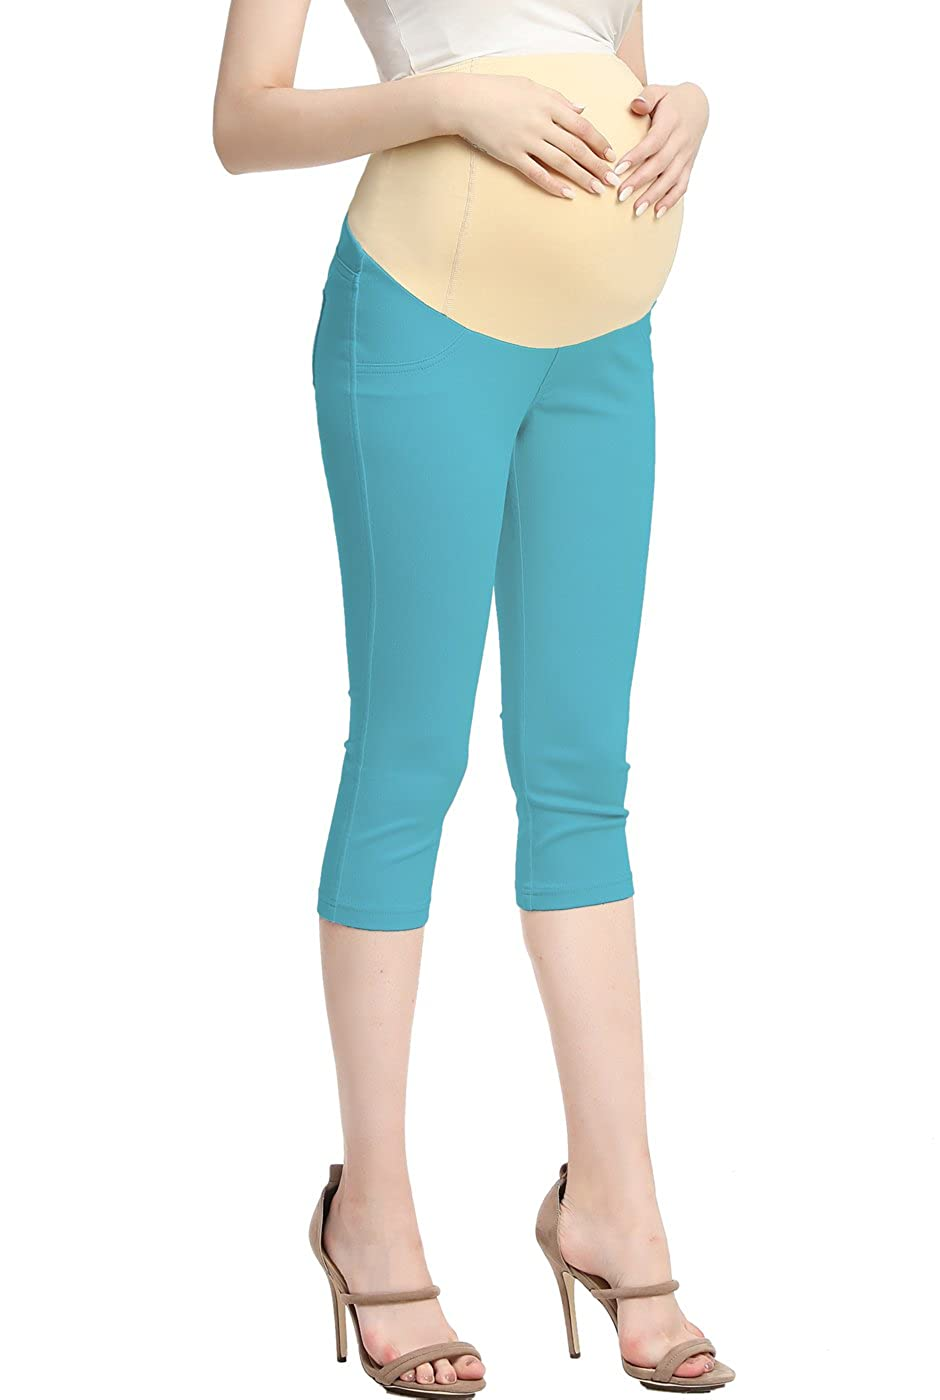 8e3121a0498bc Momo Maternity Women's Stretchy Capri Cropped Ankle Slim Jeggings 18.5